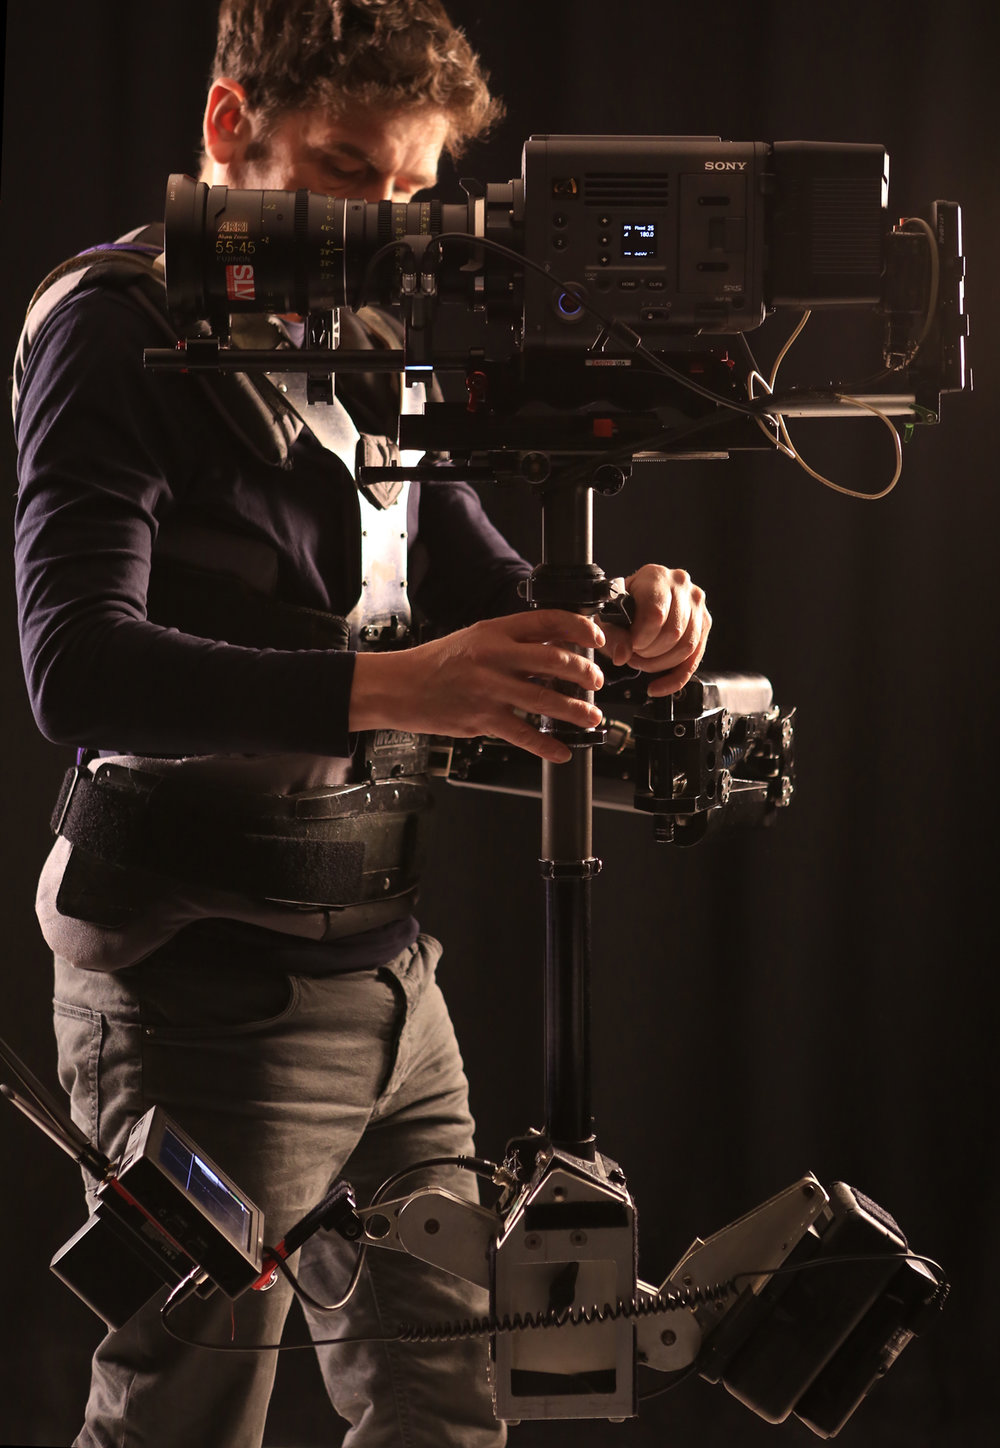 Sony Venice. - The Venice produces some of the best pictures of any movie camera today. If it's good enough for James Cameron then it's good enough for me! Here I'm using it with the Arri Alura 15.5-45mm zoom, a great all round steadicam lens, a real time saver on busy shoots. This camera will take almost any lens as it has a native E and PL mount.The Venice has dual native iso and can shoot RAW or prores in 2k 4k and even 6k, and has a full frame sensor which can be windowed down to super 35 ( the zoom pictured is a super 35 lens ). CP2's or the new PL Sigma Cine primes work well on this rig.